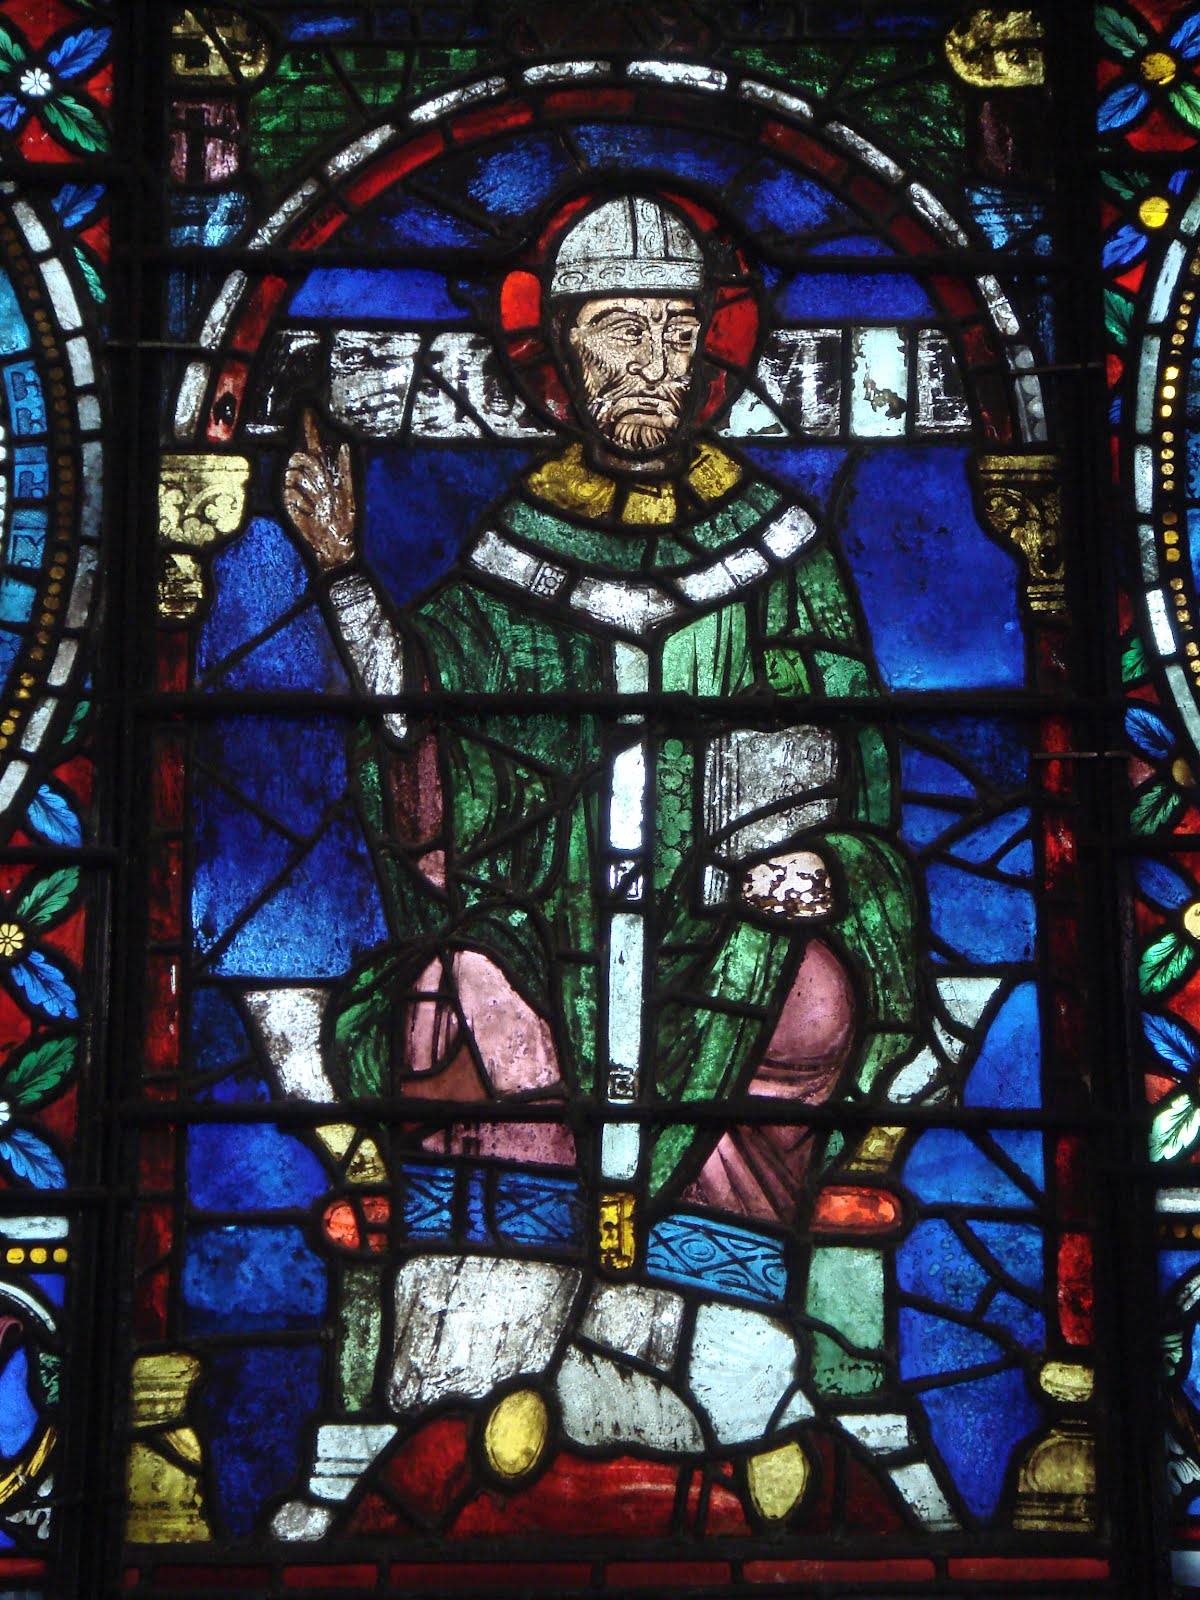 a biography of st thomas becket Thomas becket , saint, martyr, archbishop of canterbury, b at london, december 21, 1118 () d  a great change took place in the saint's way of life after his .